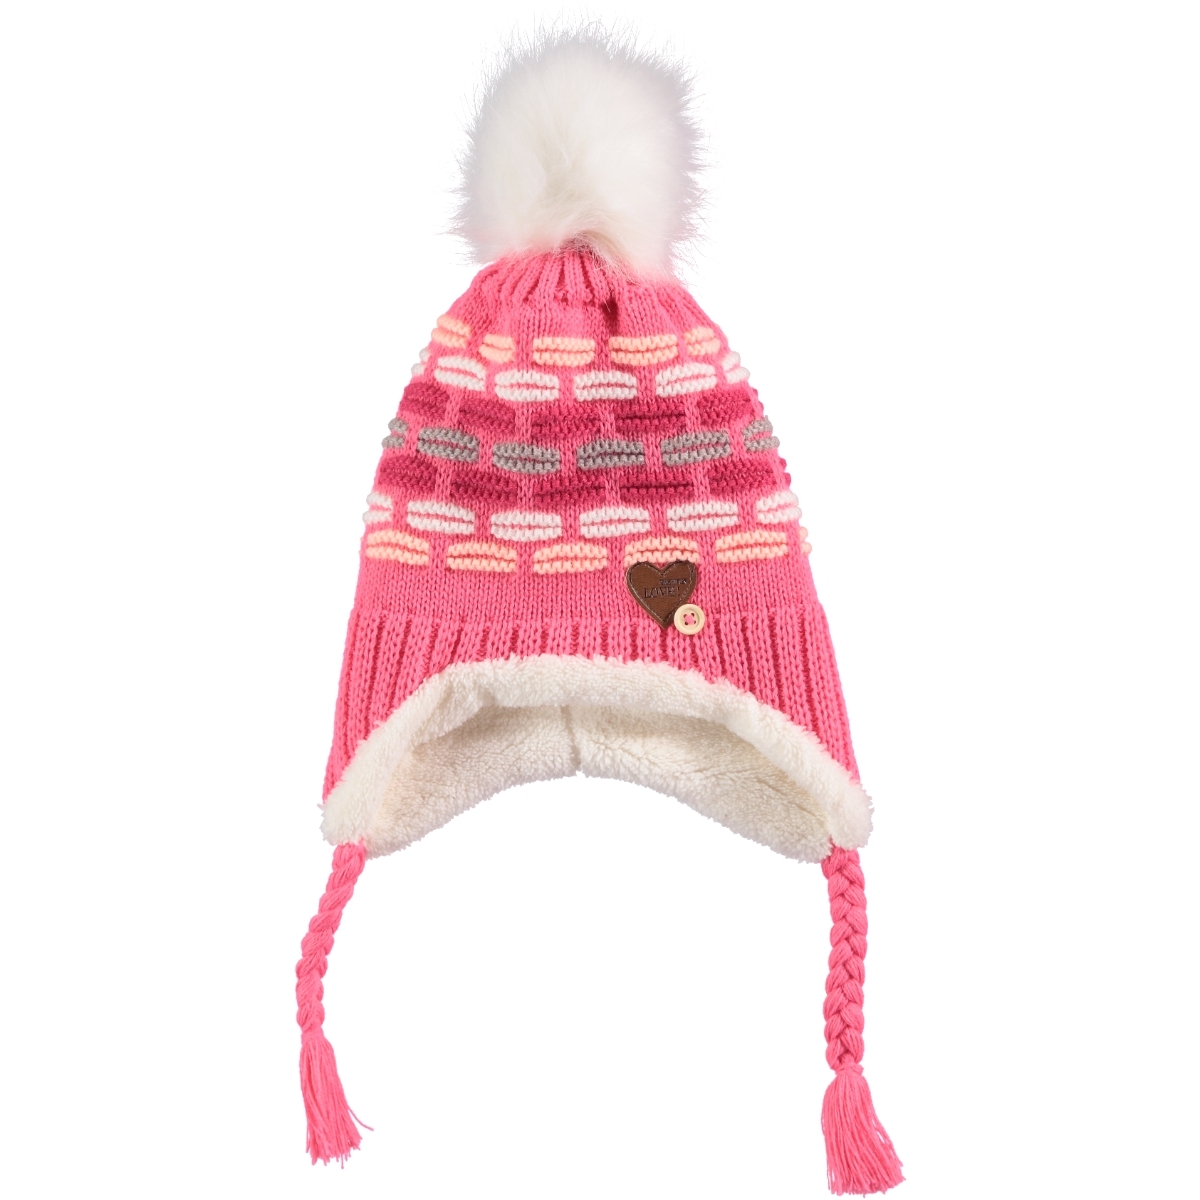 Civil Tongue In Cheek Girl Boy Hat Ages 4-8